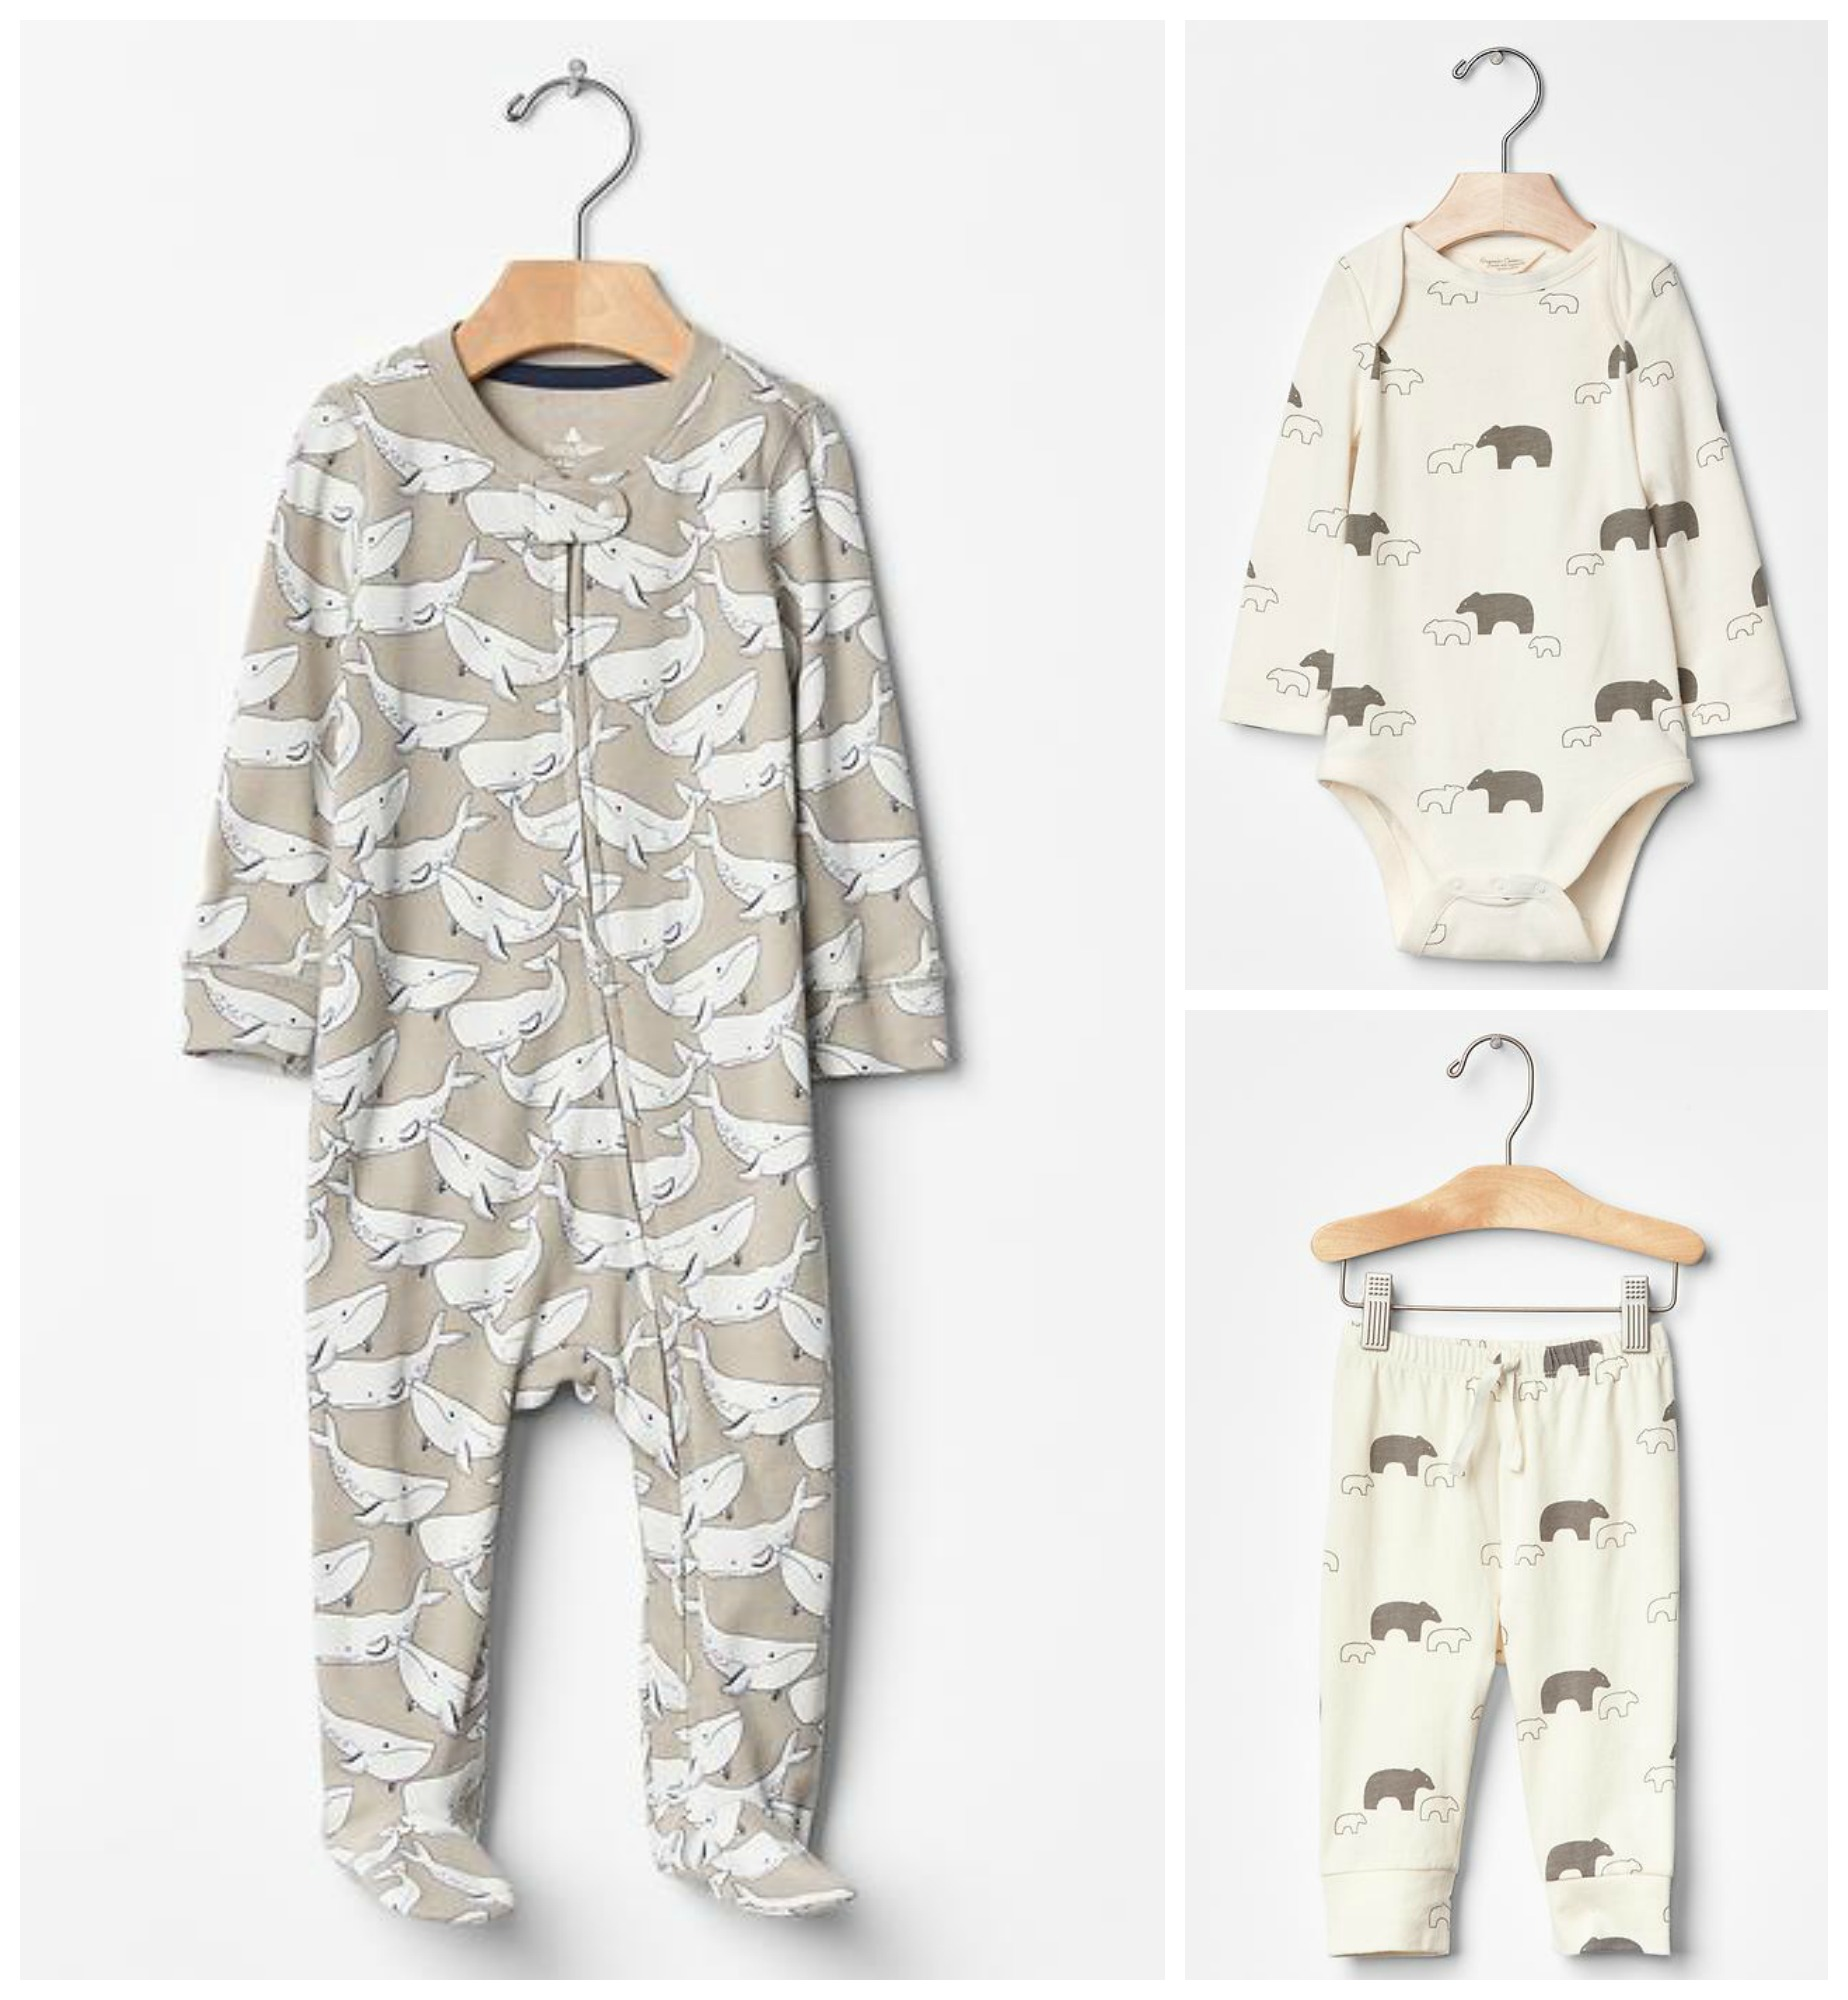 Baby Gap Wishlist for Baby Boy Lamb & Bear